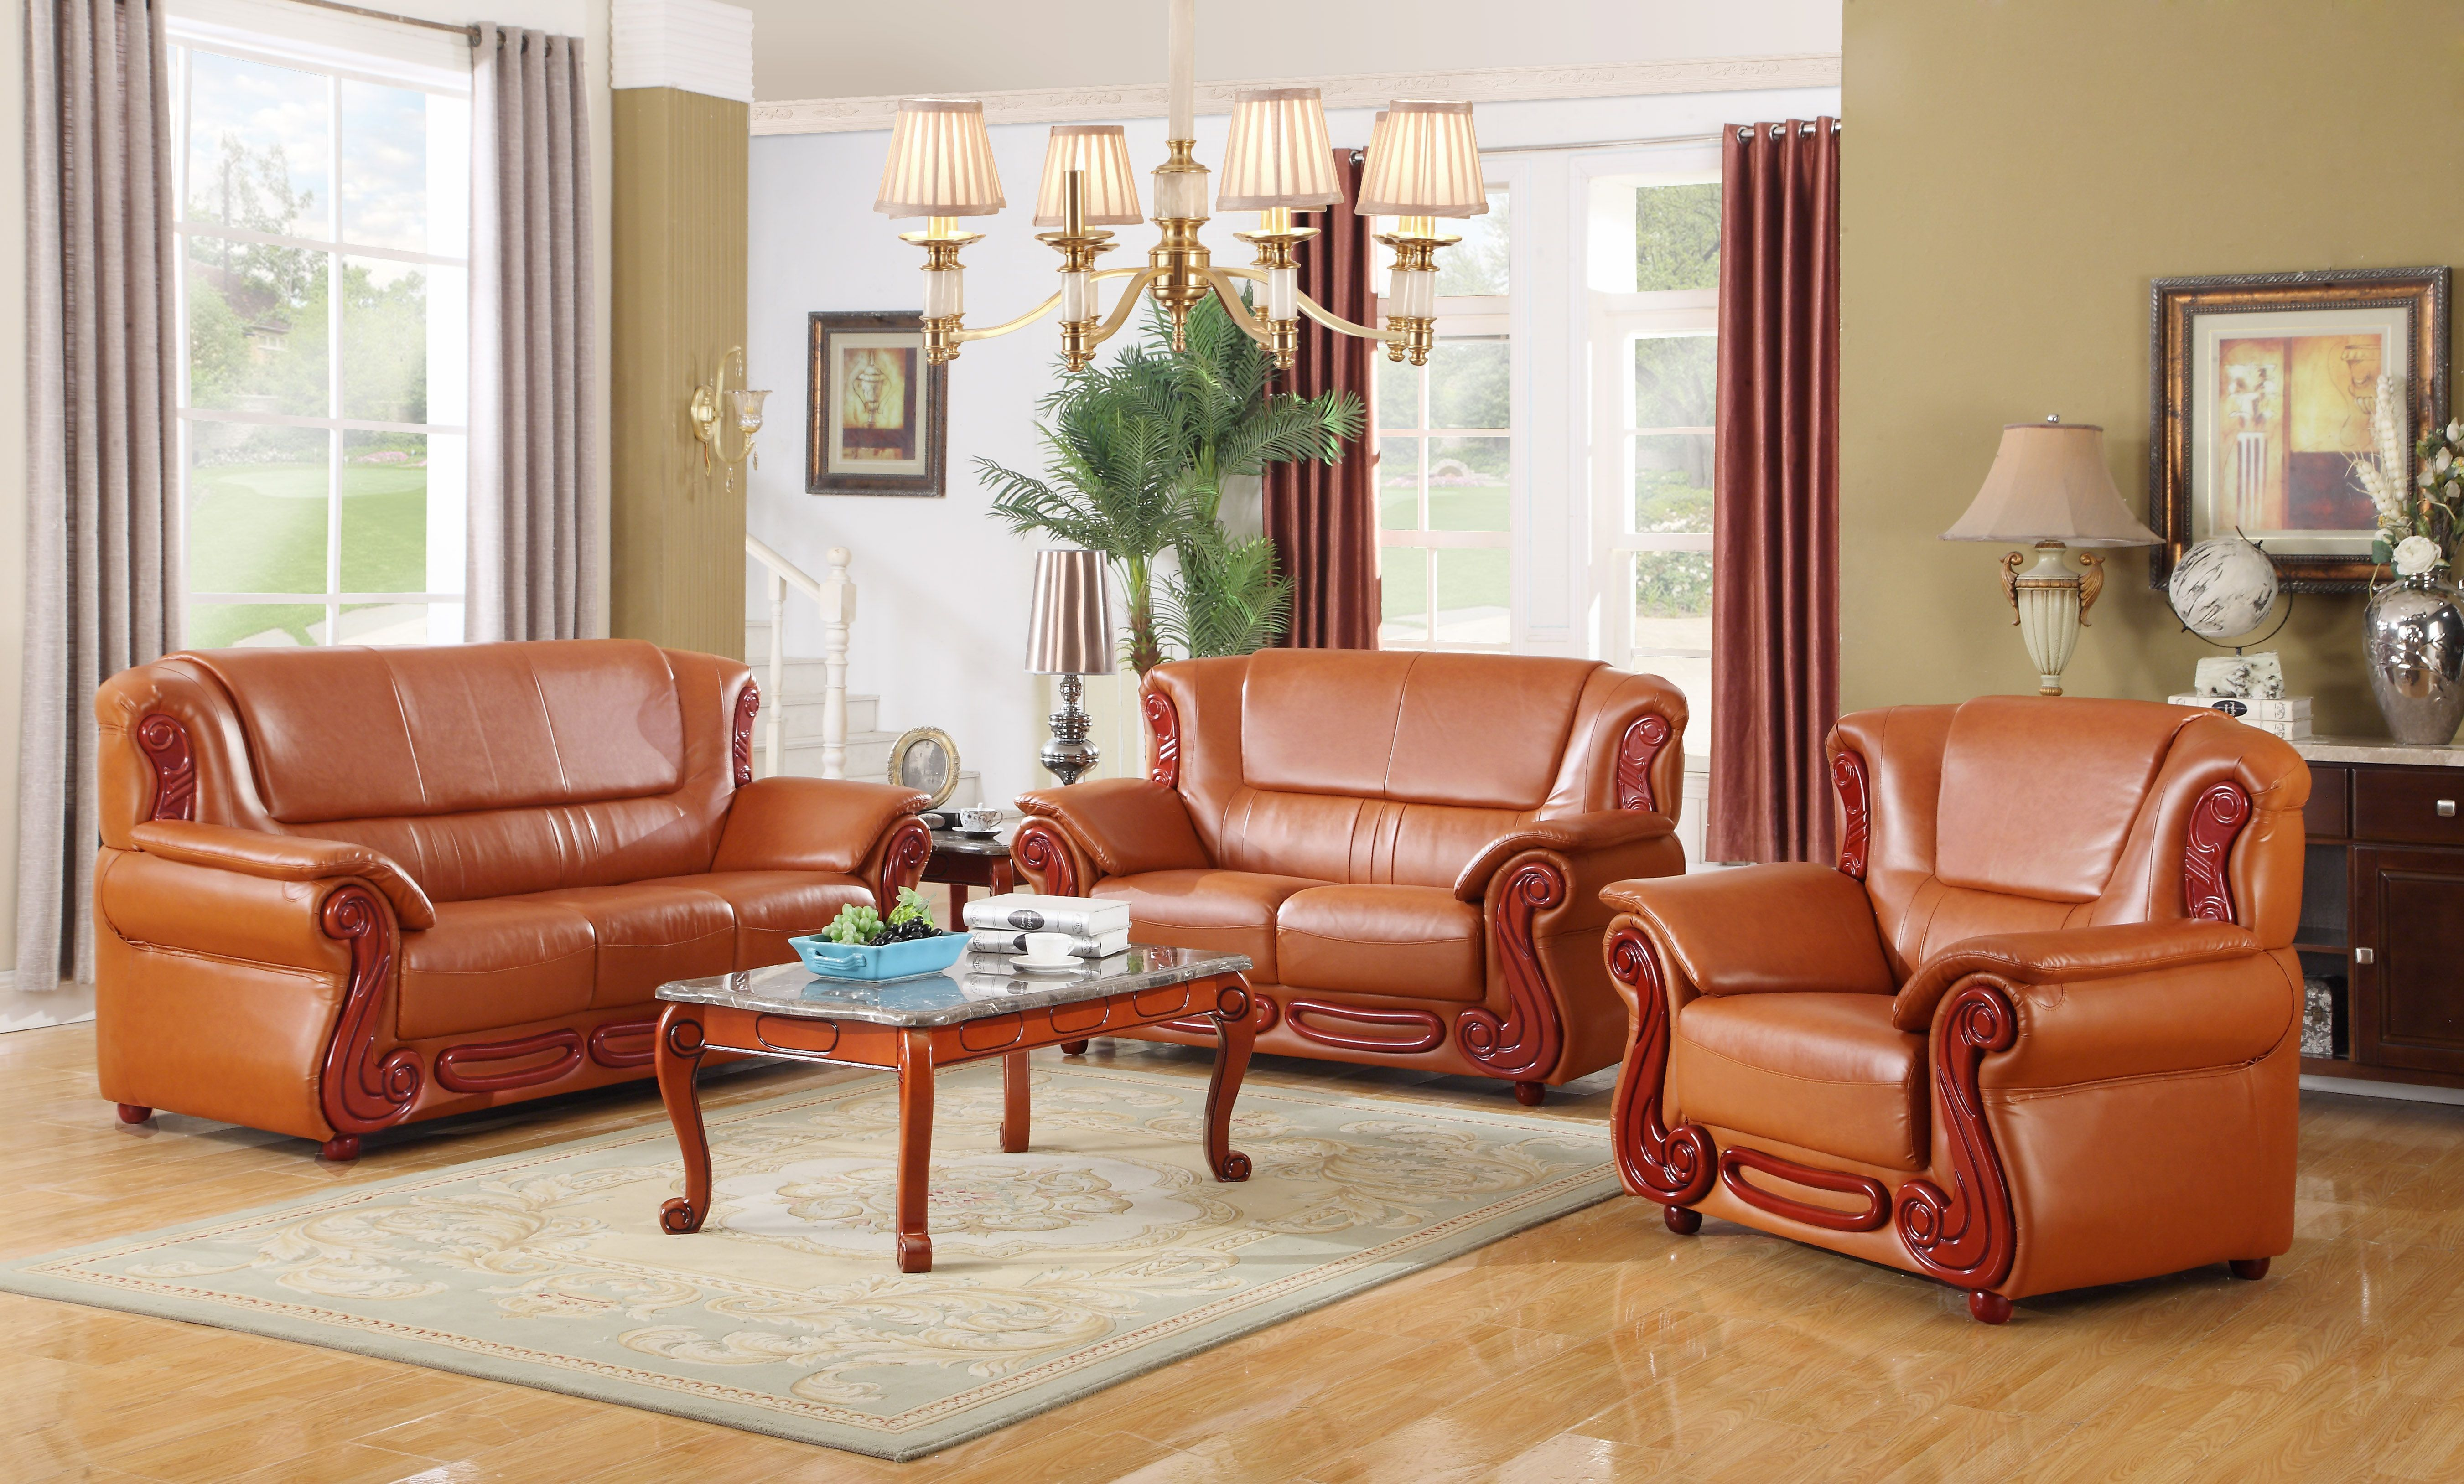 Meridian Furniture The Bella Living Room Collection Is An Exquisite Example Of Traditional Design Luxury Furniture Living Room Furniture Luxury Living Room